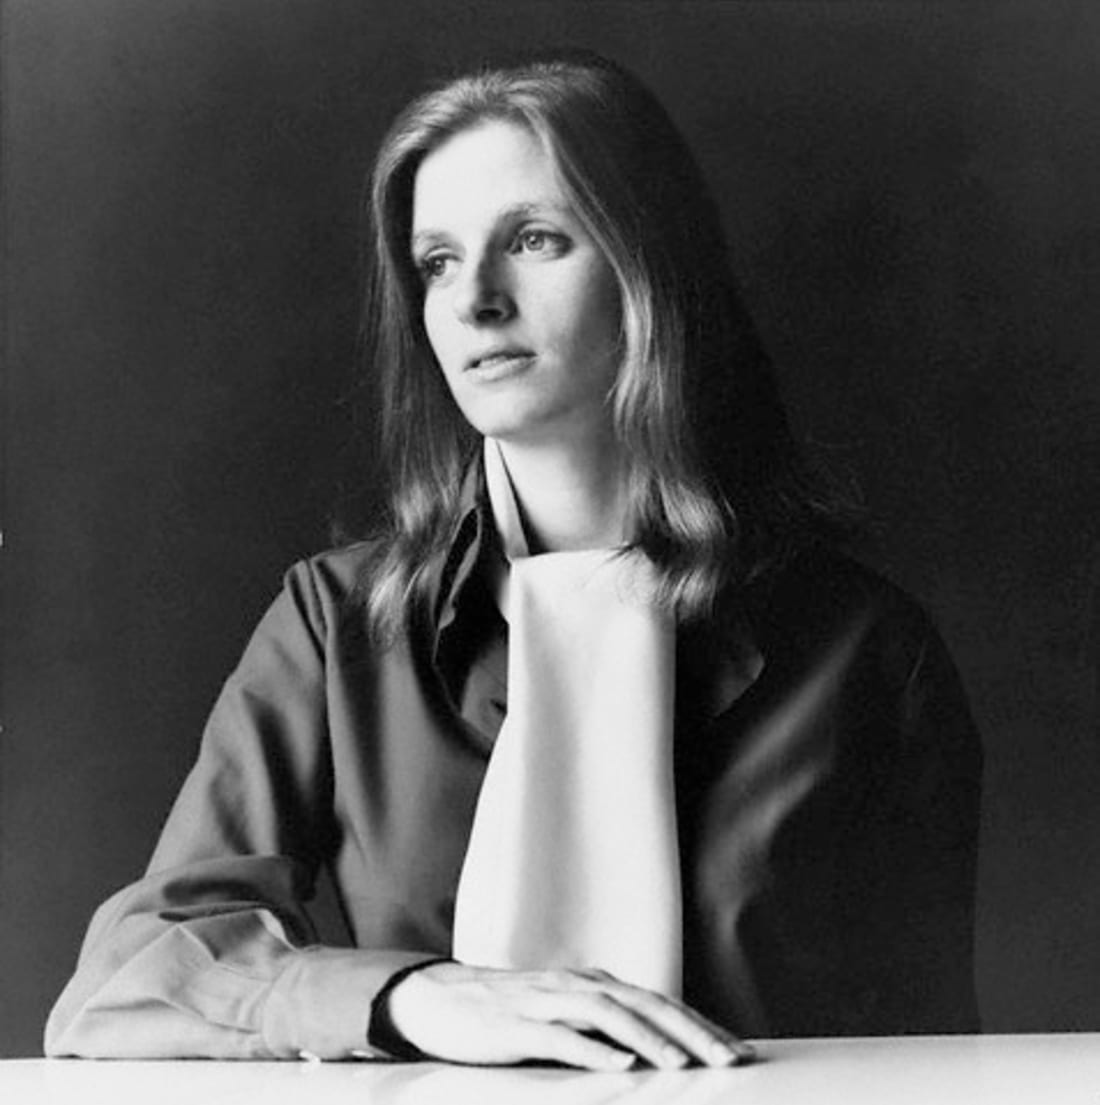 Linda McCartney